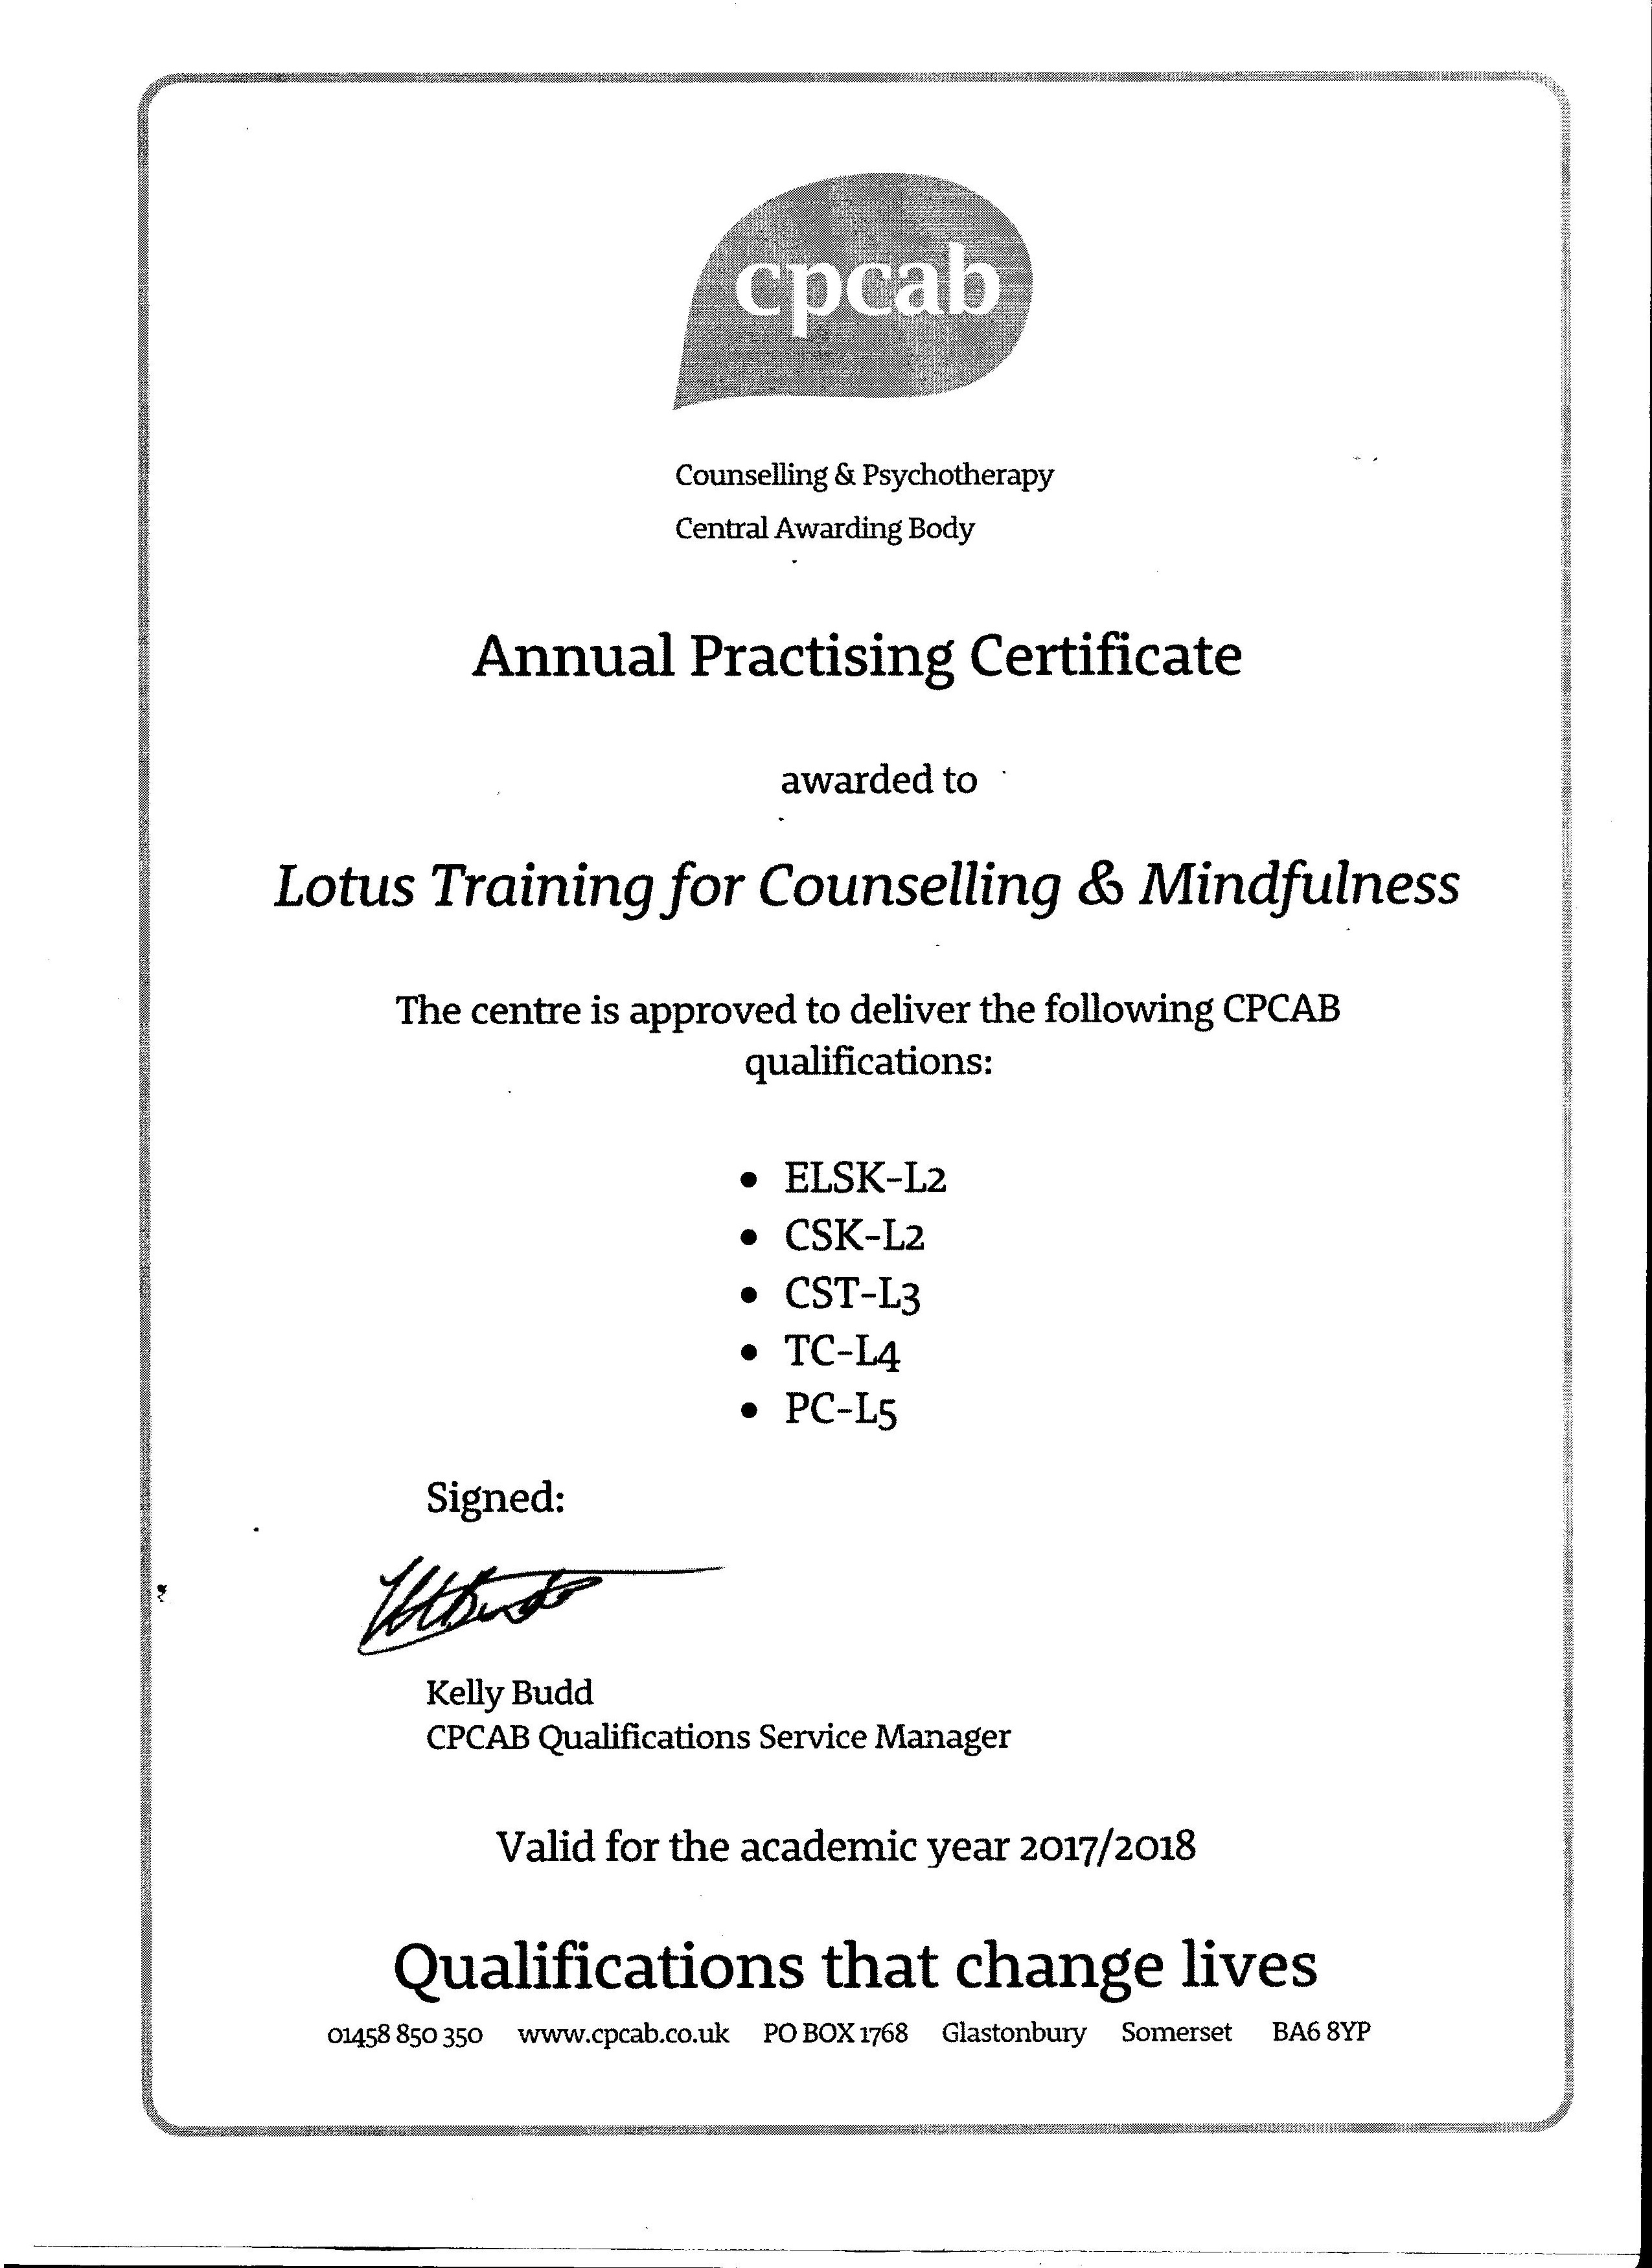 About lotus training co lotus training our courses lead to nationally regulated qualifications awarded by the counselling and psychotherapy central awarding body cpcab the only xflitez Choice Image